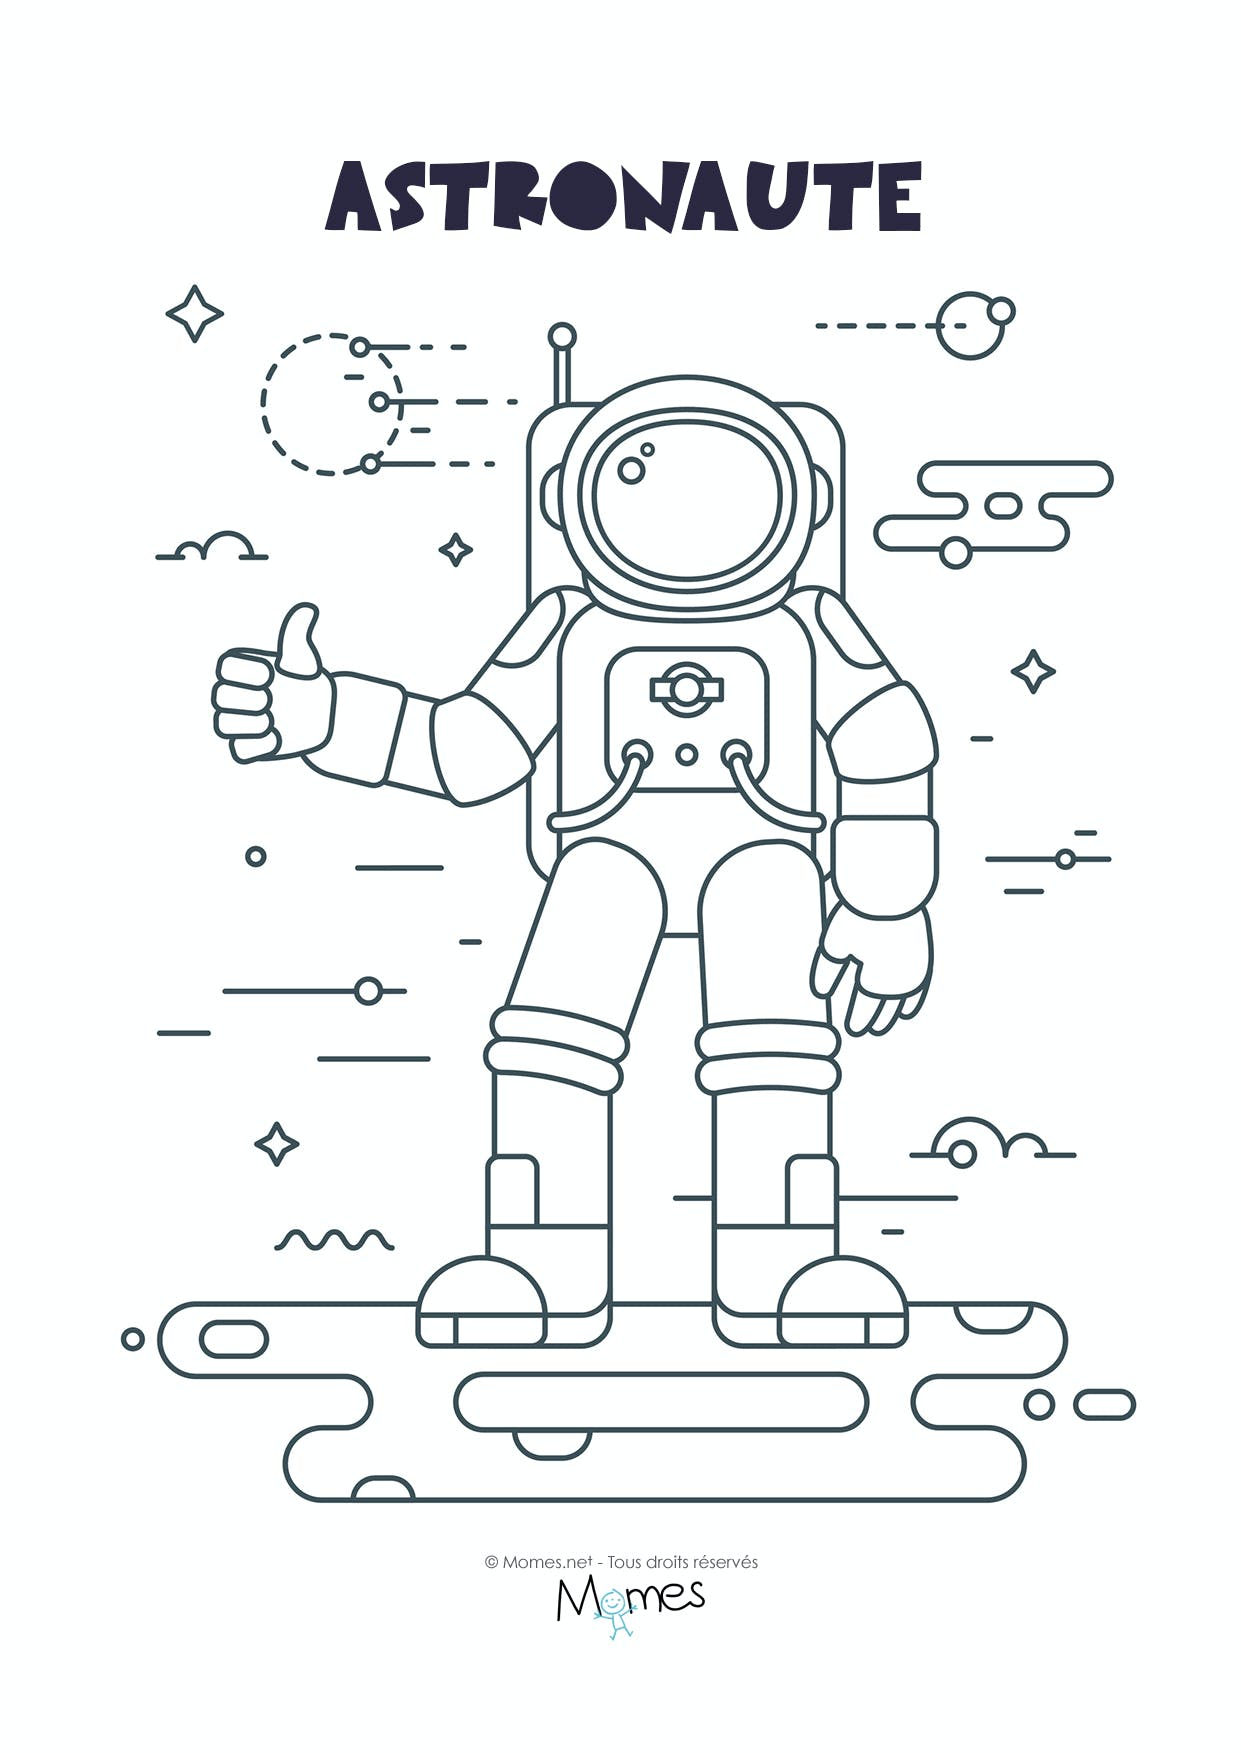 Coloriage Fusee Astronaute.Coloriage Astronaute Momes Net